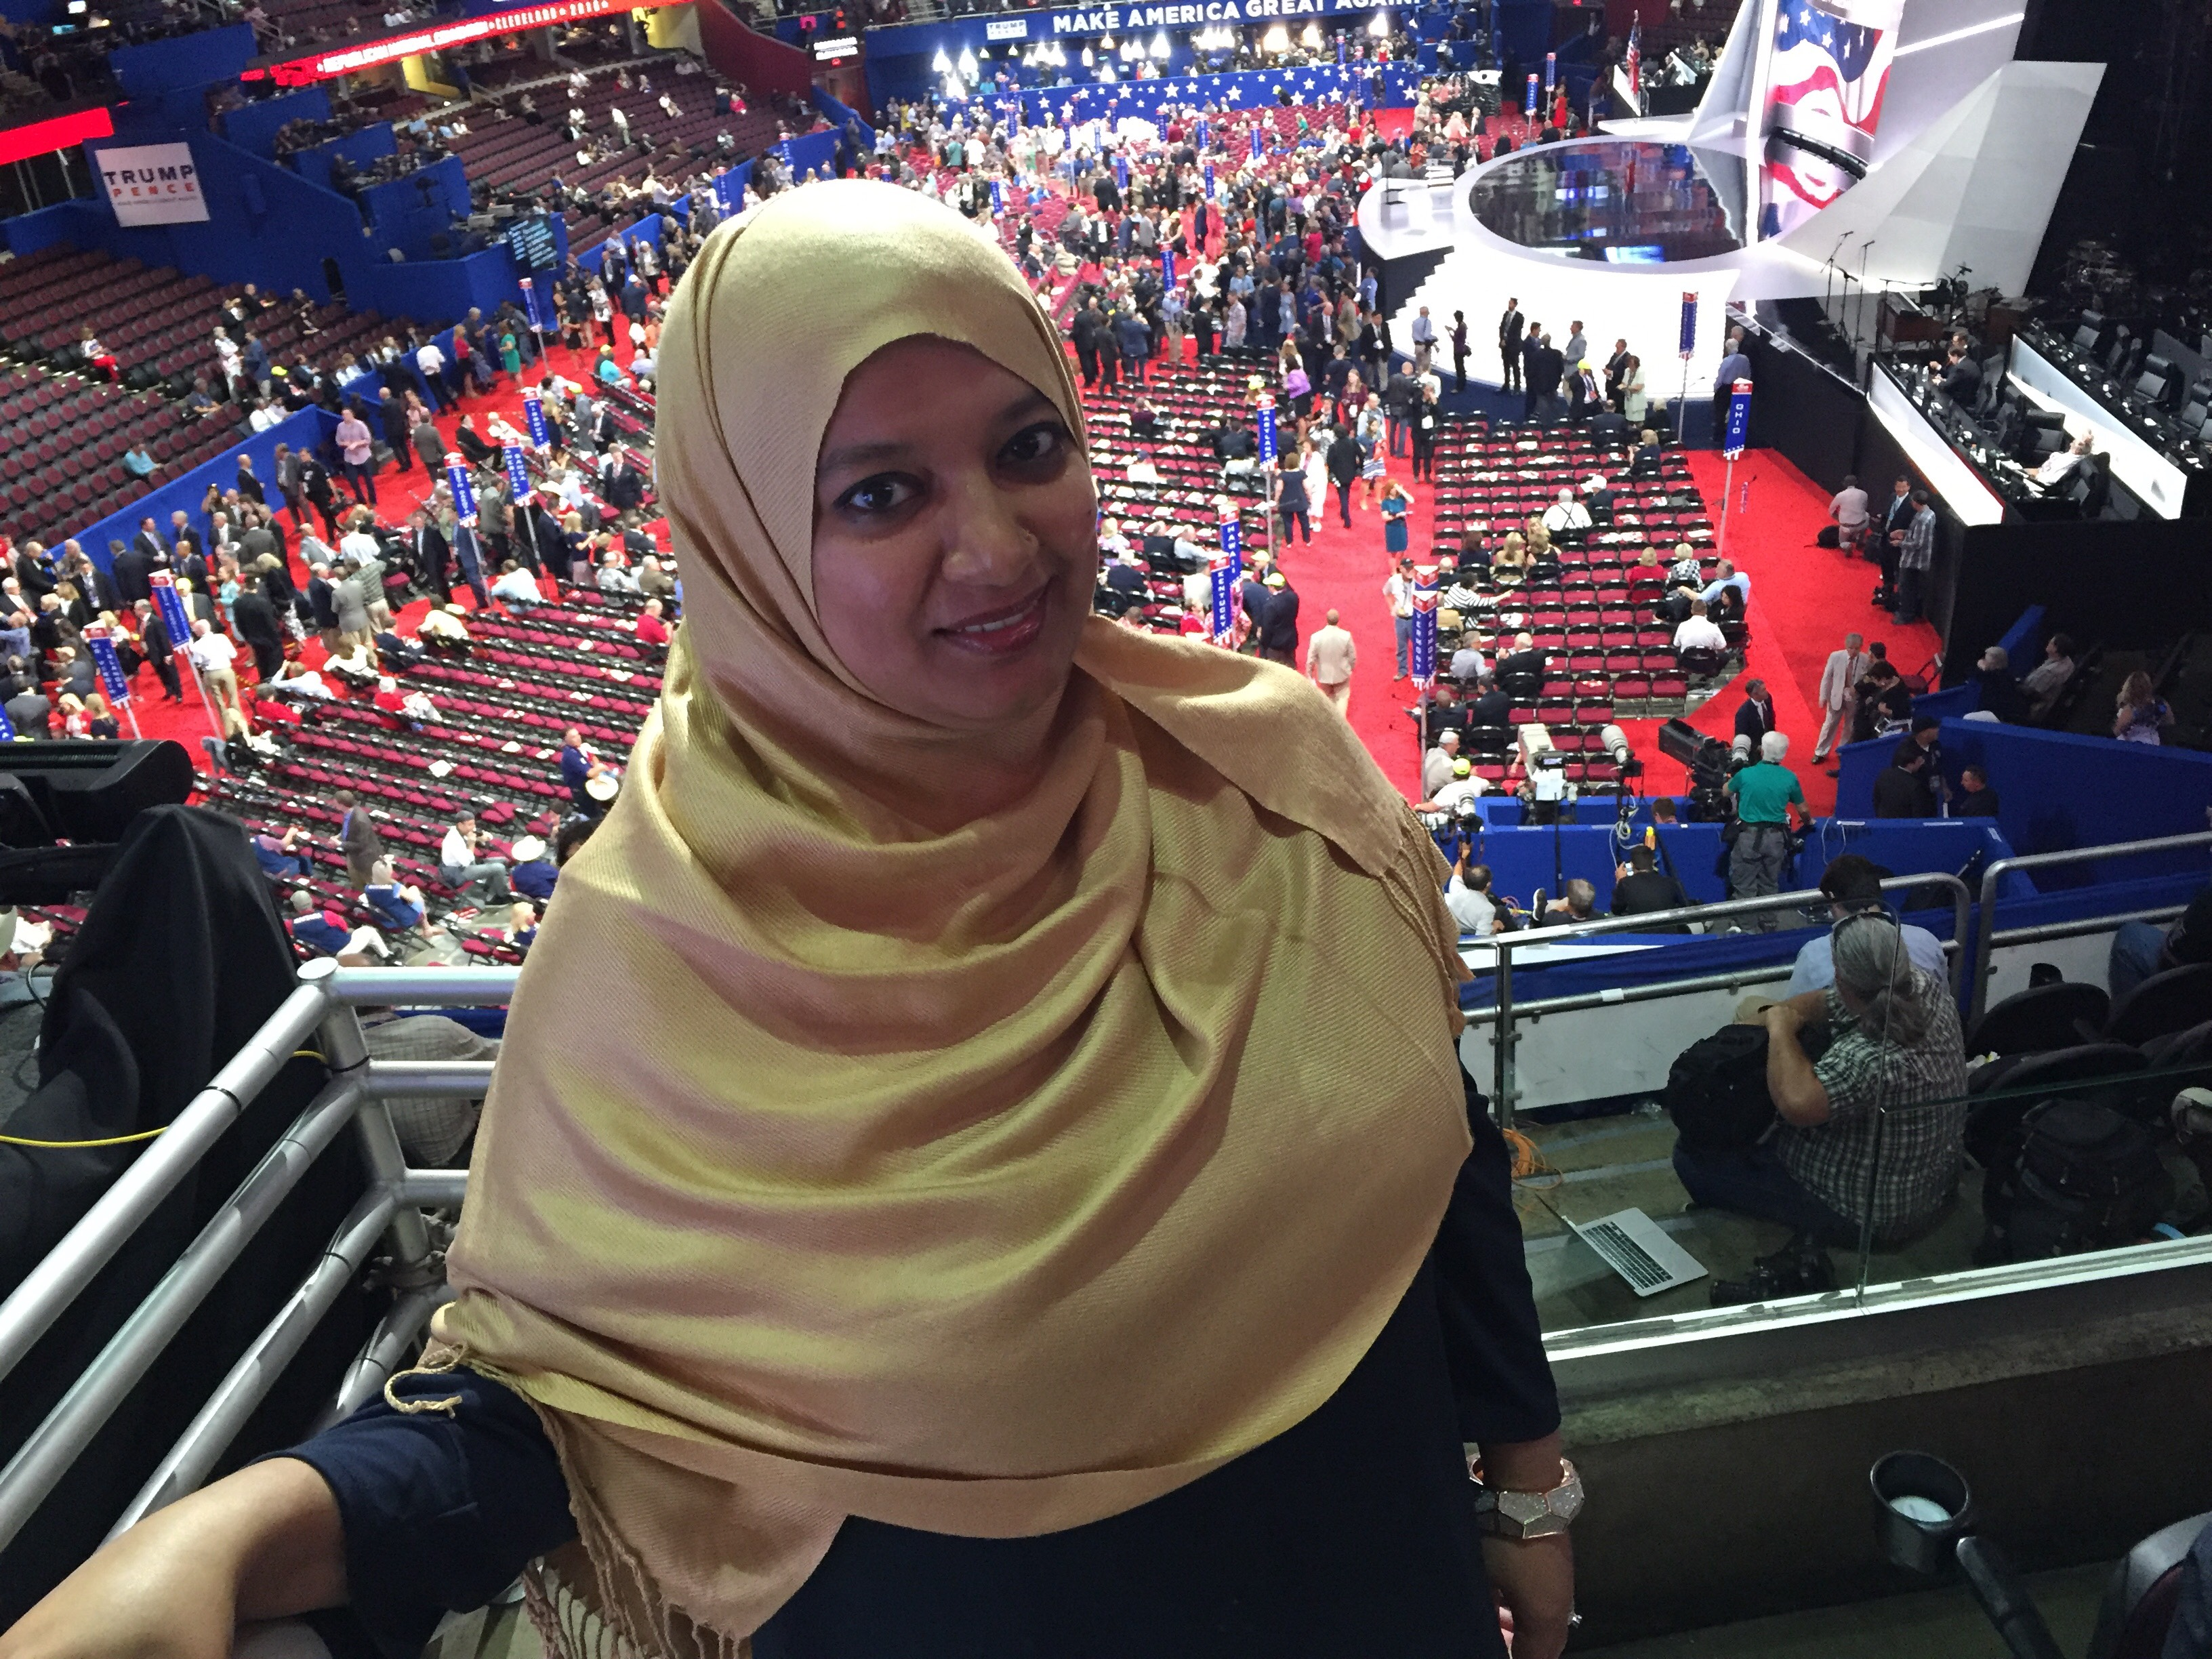 A Muslim at the RNC